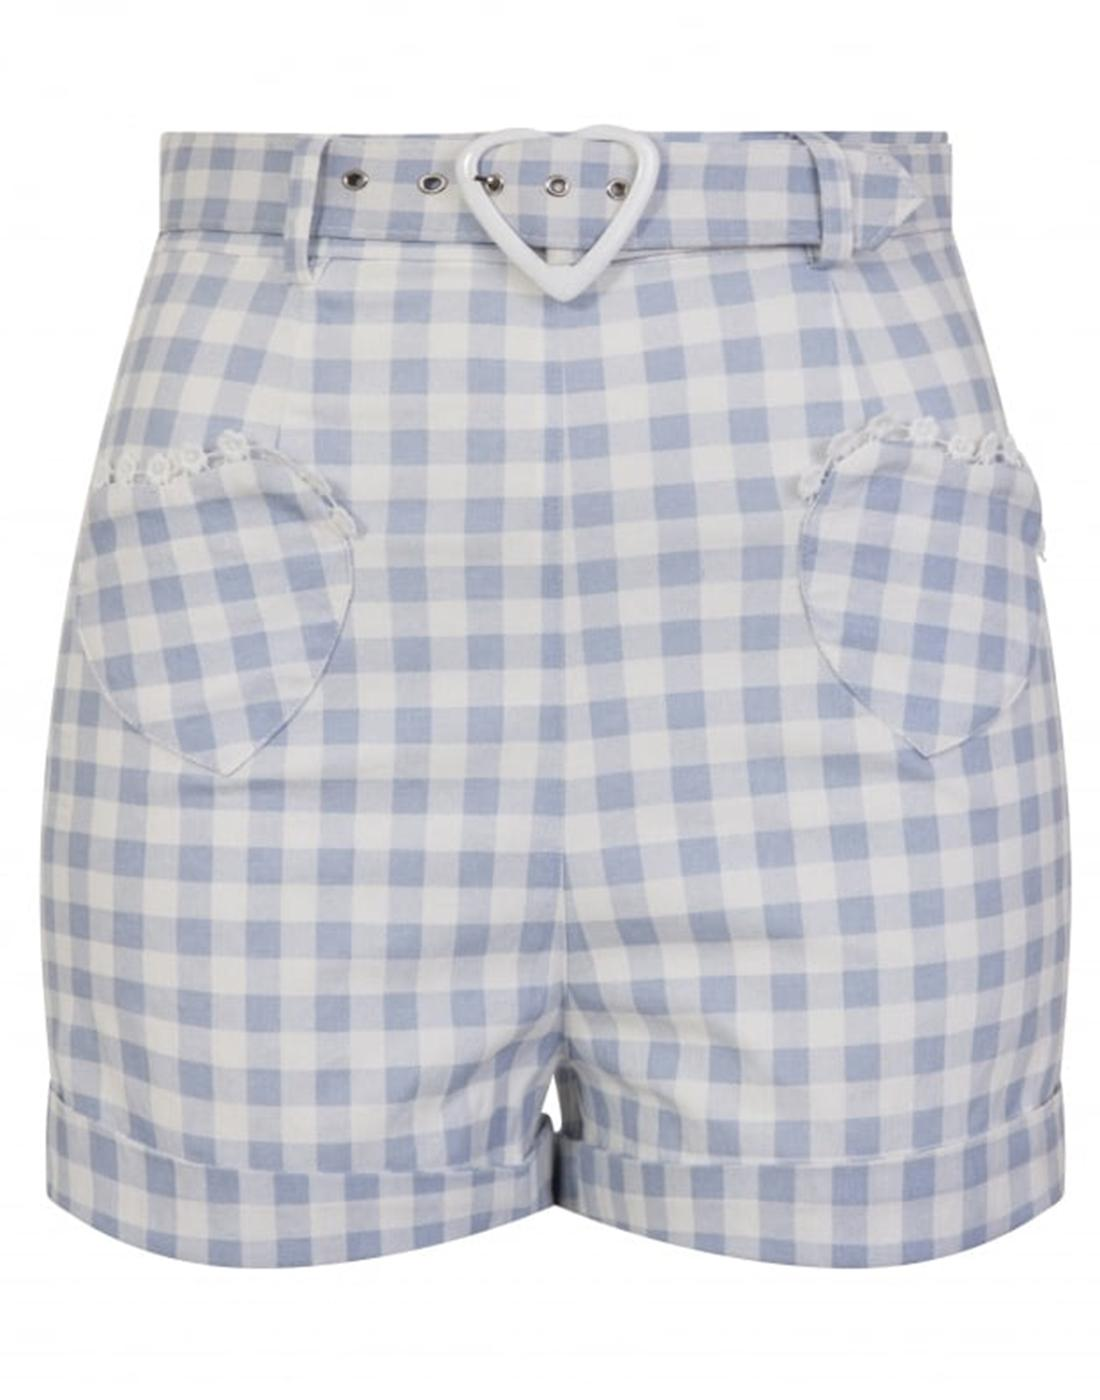 Lisa COLLECTIF Women's Retro 50s Gingham Shorts